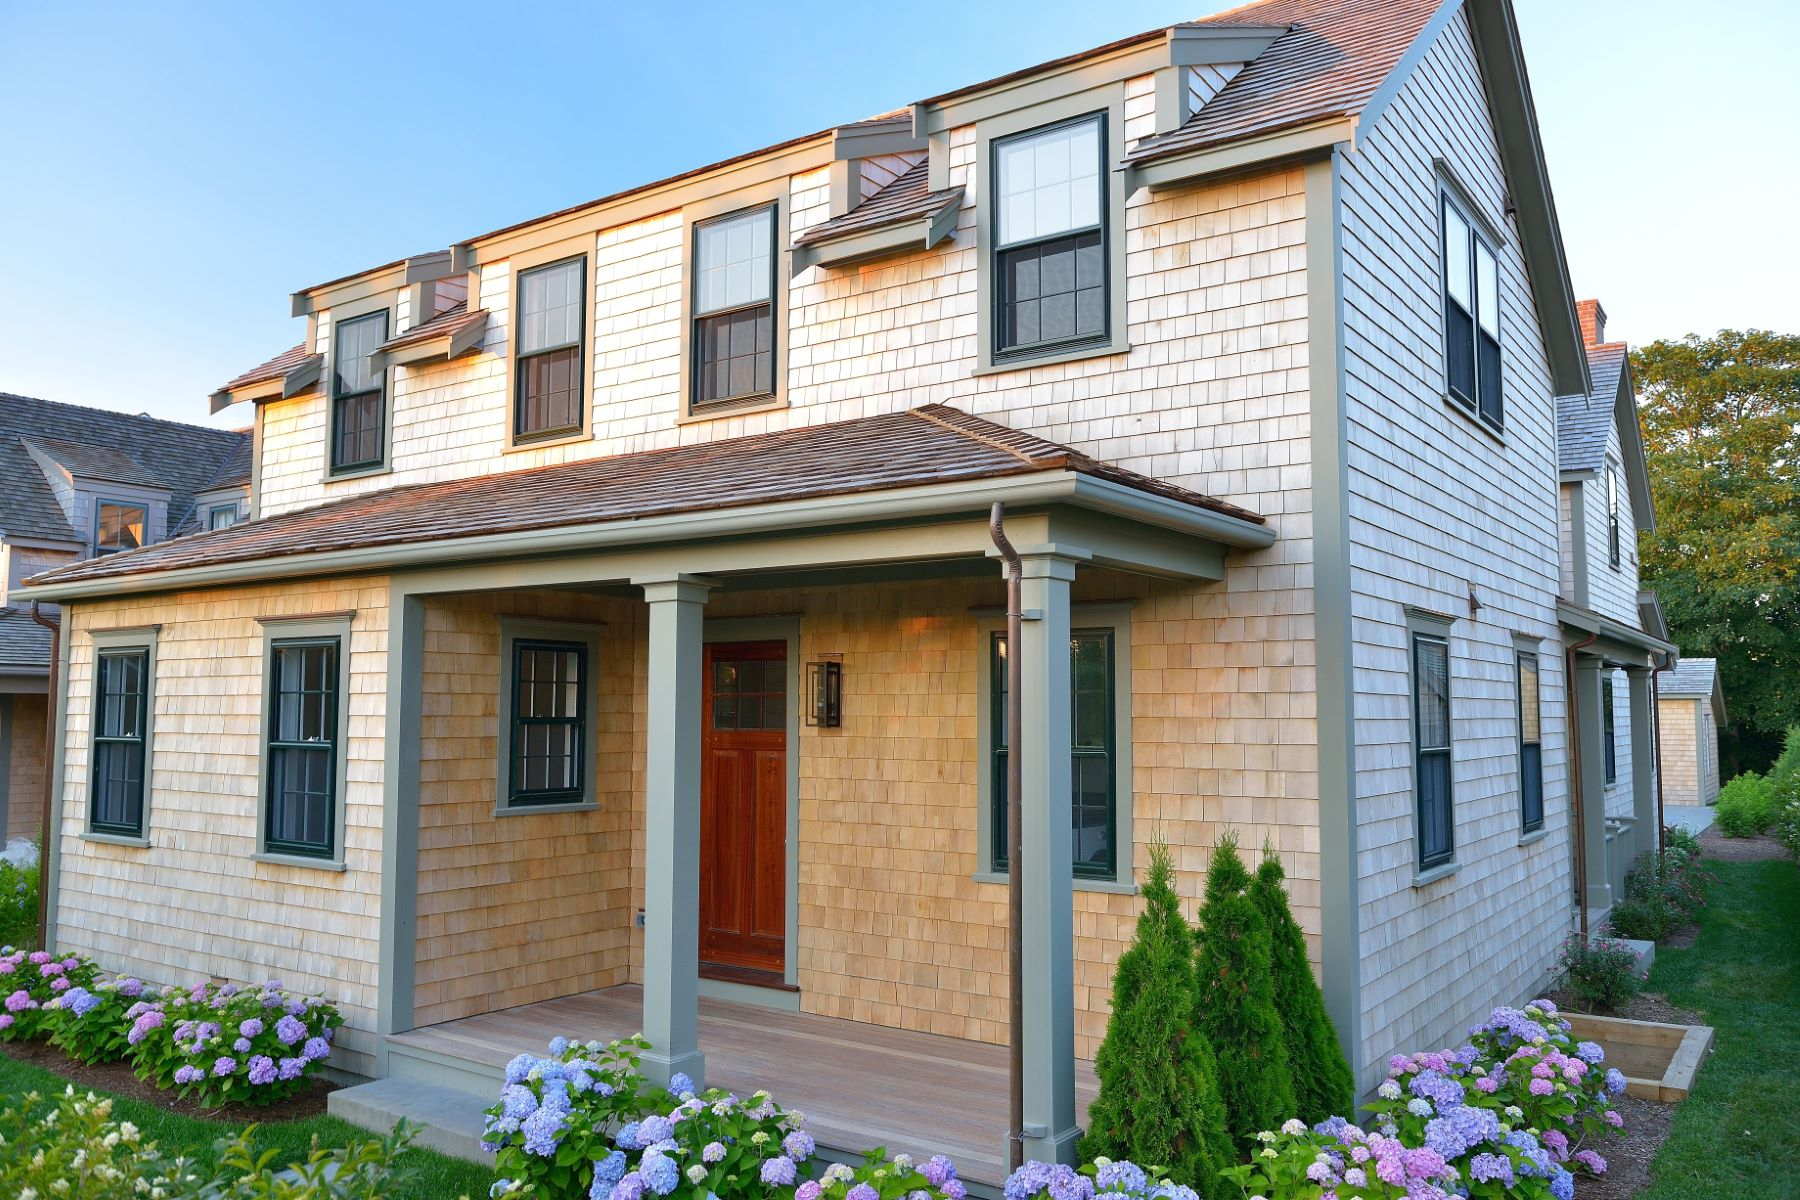 Single Family Home for Sale at Gorgeous New Construction 6.5 Winn Street Nantucket, Massachusetts, 02554 United States